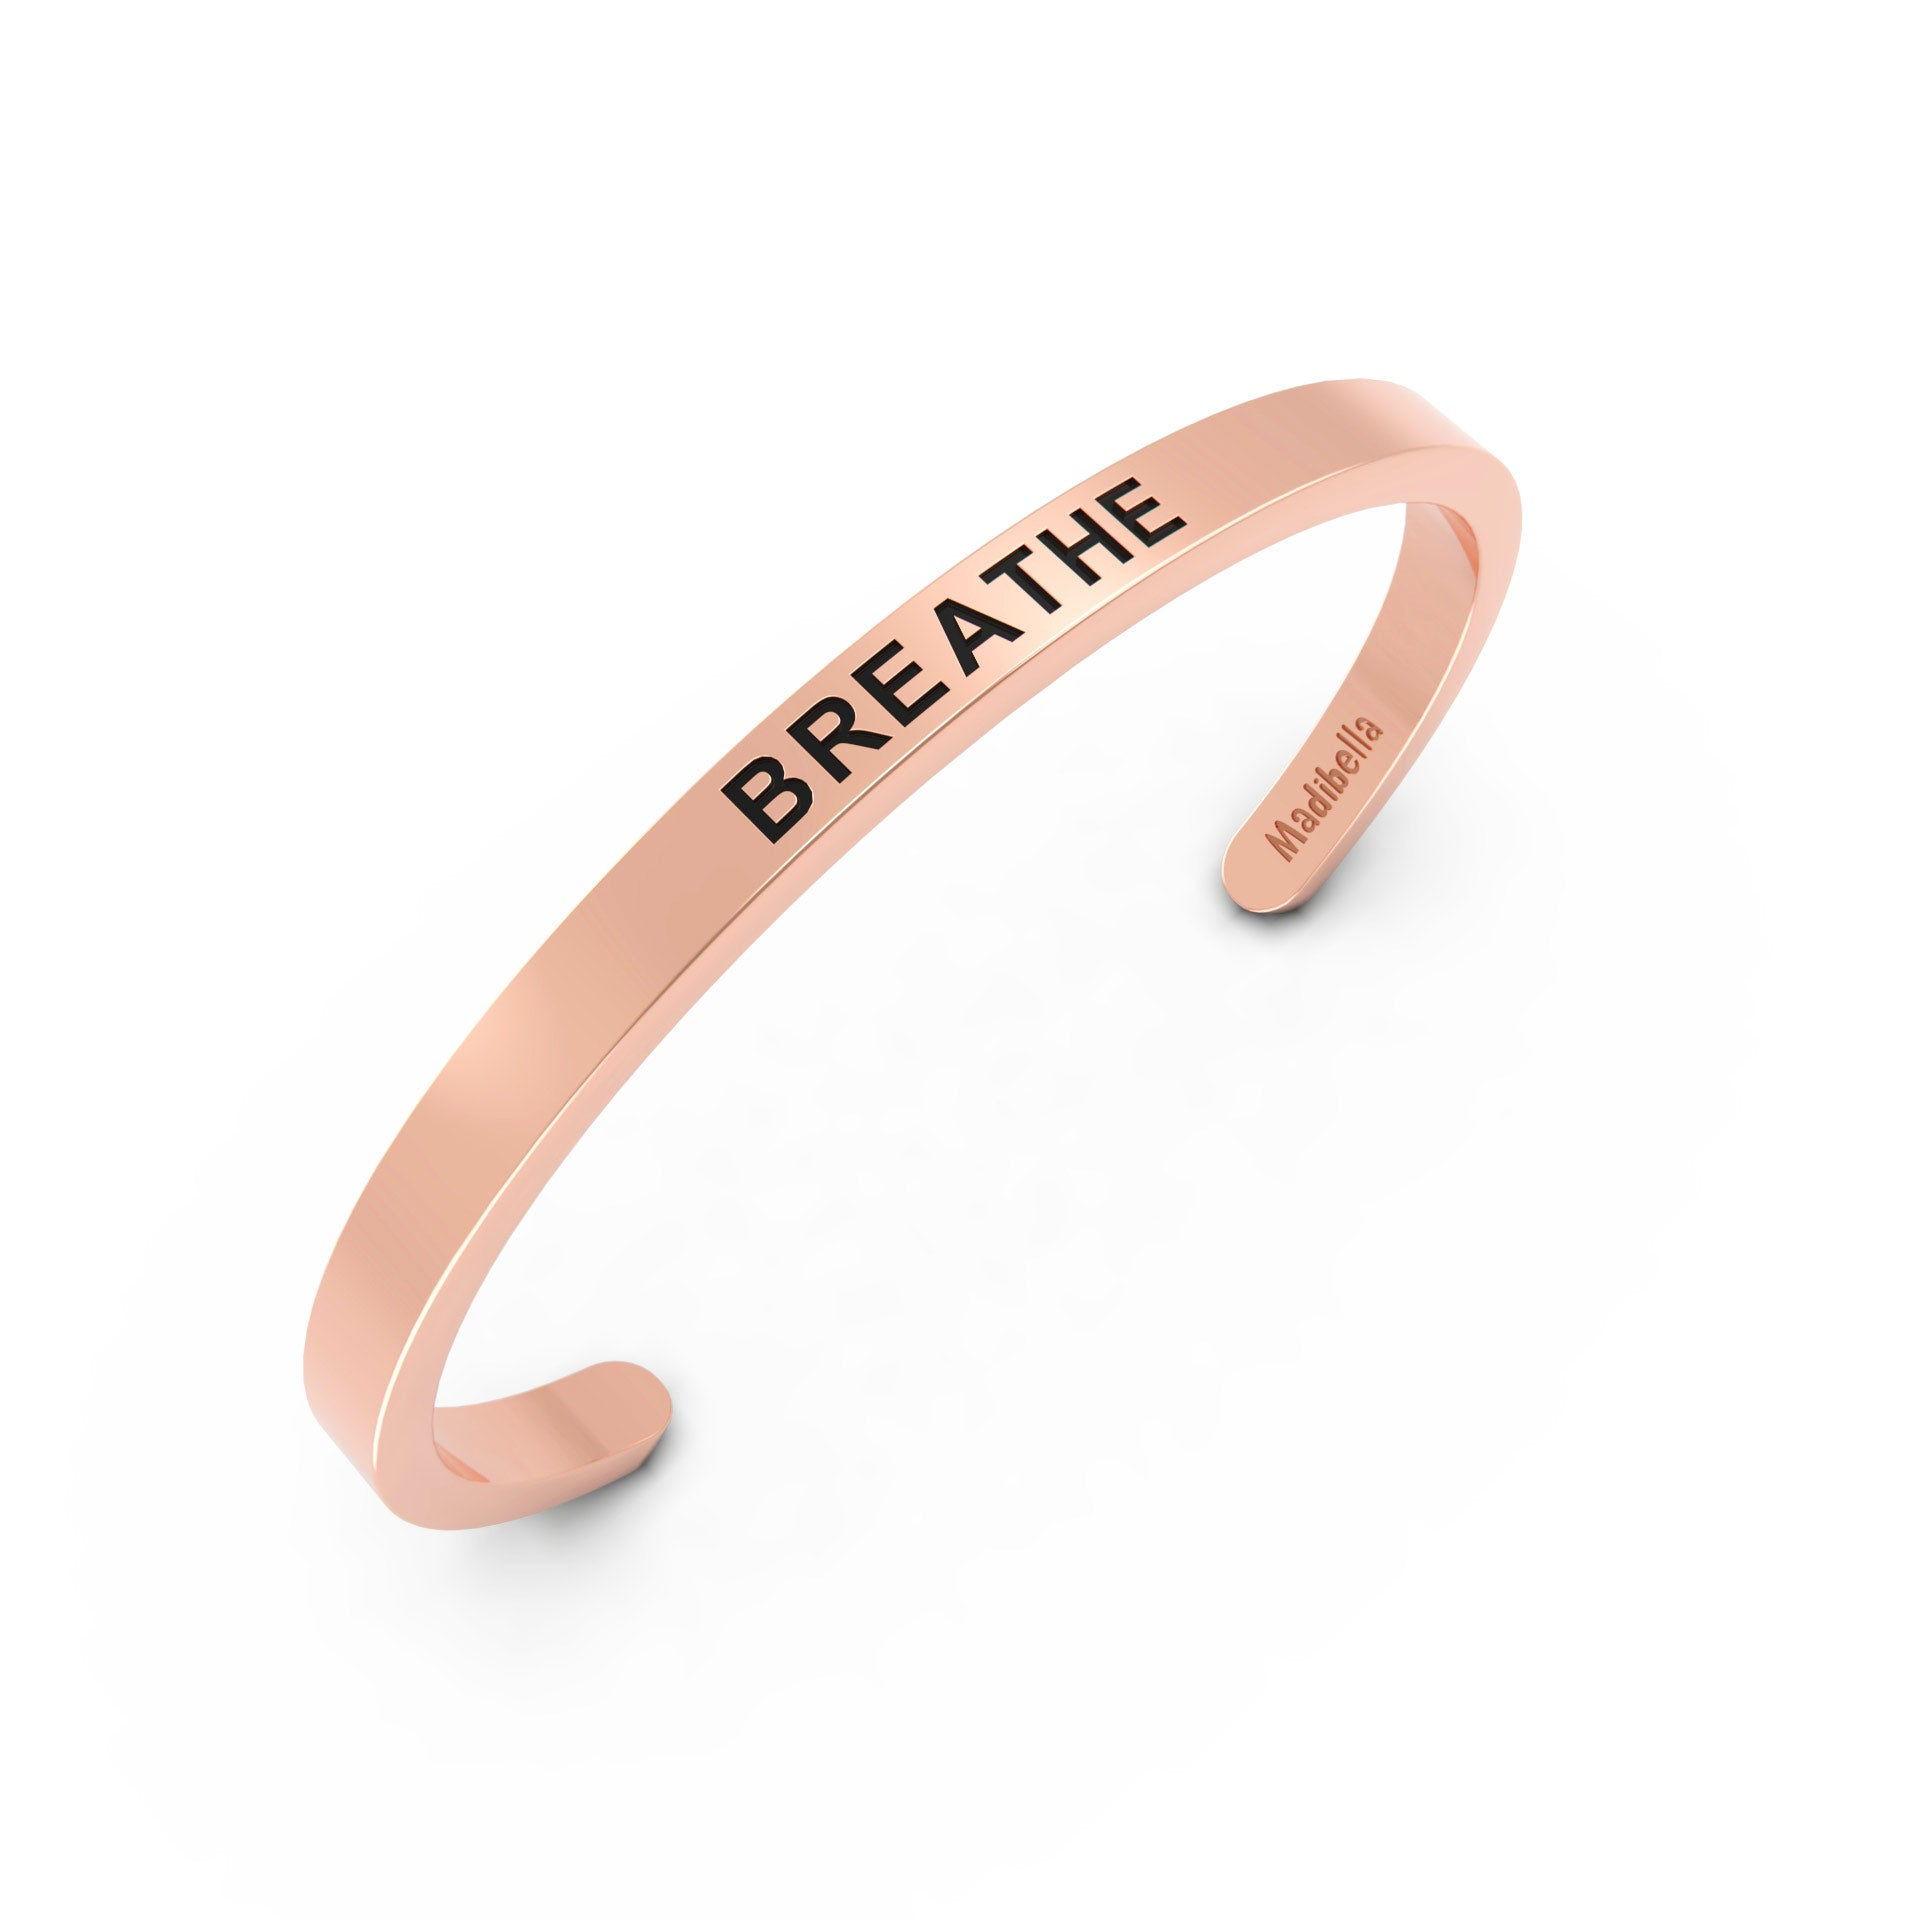 breathe rose gold stainless steel cuff bracelet for women